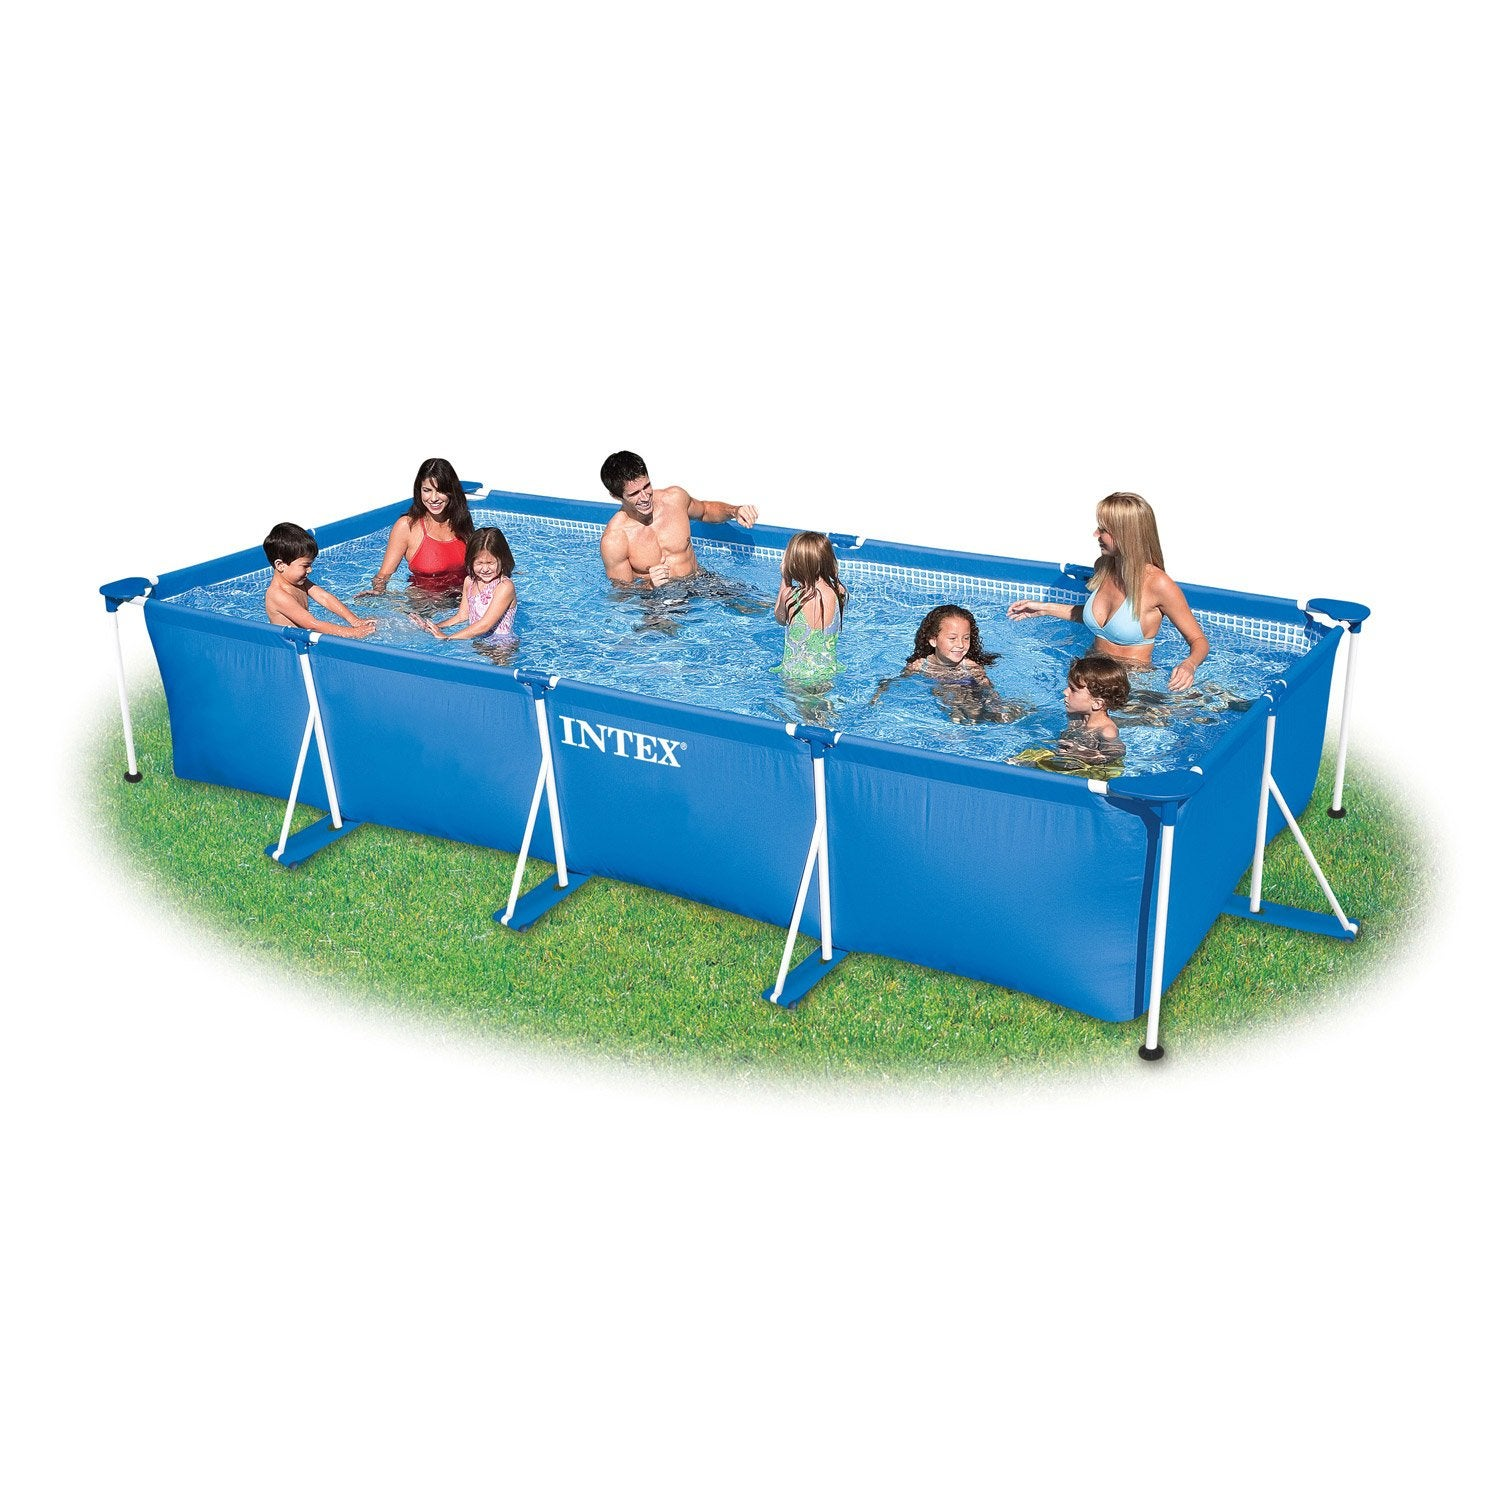 Piscine hors sol autoportante tubulaire intex l x l for Pompe piscine hors sol leroy merlin